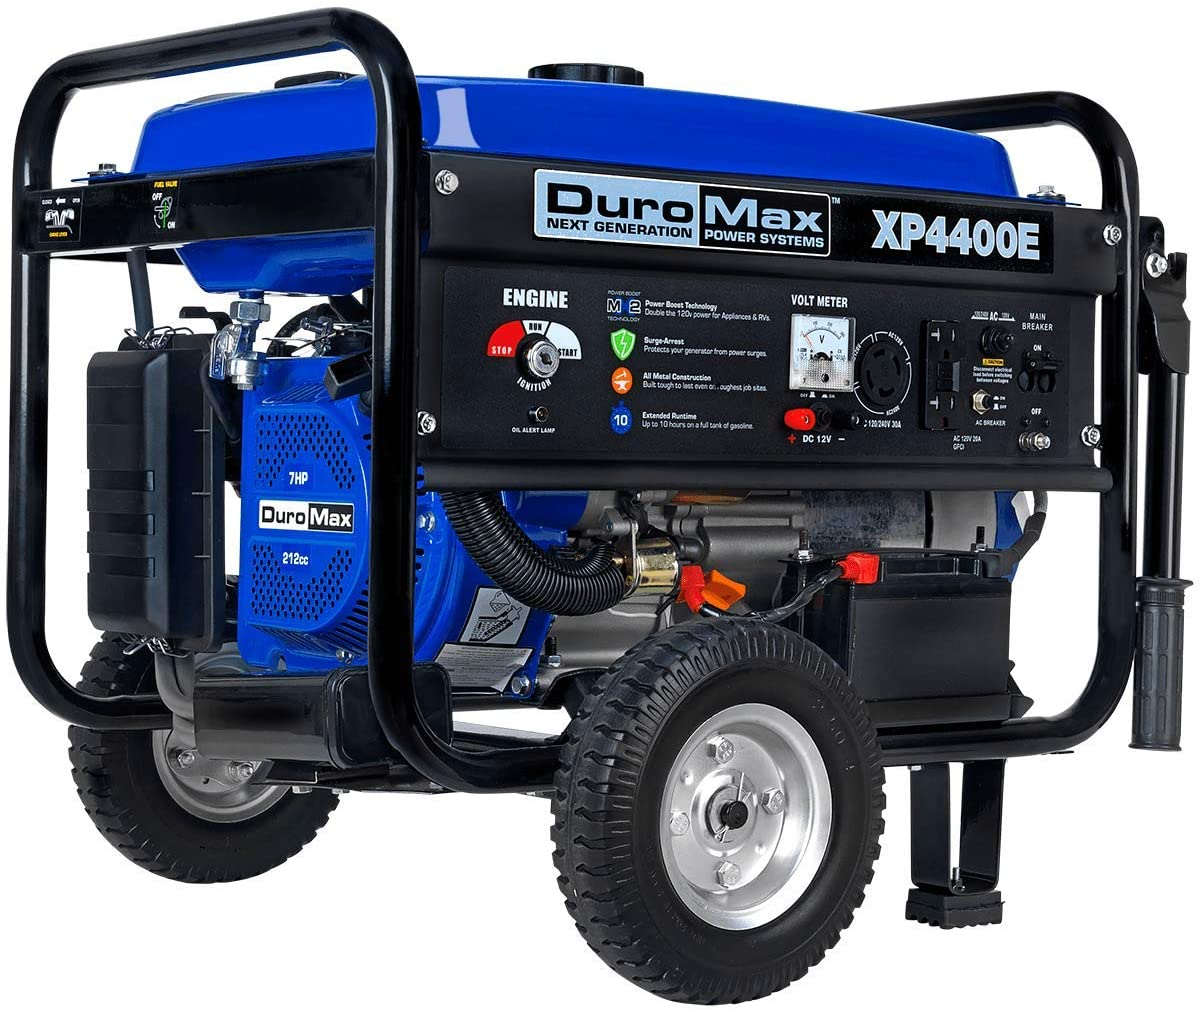 Best Home Generators For Power Outages (2021): Top 10 List 7